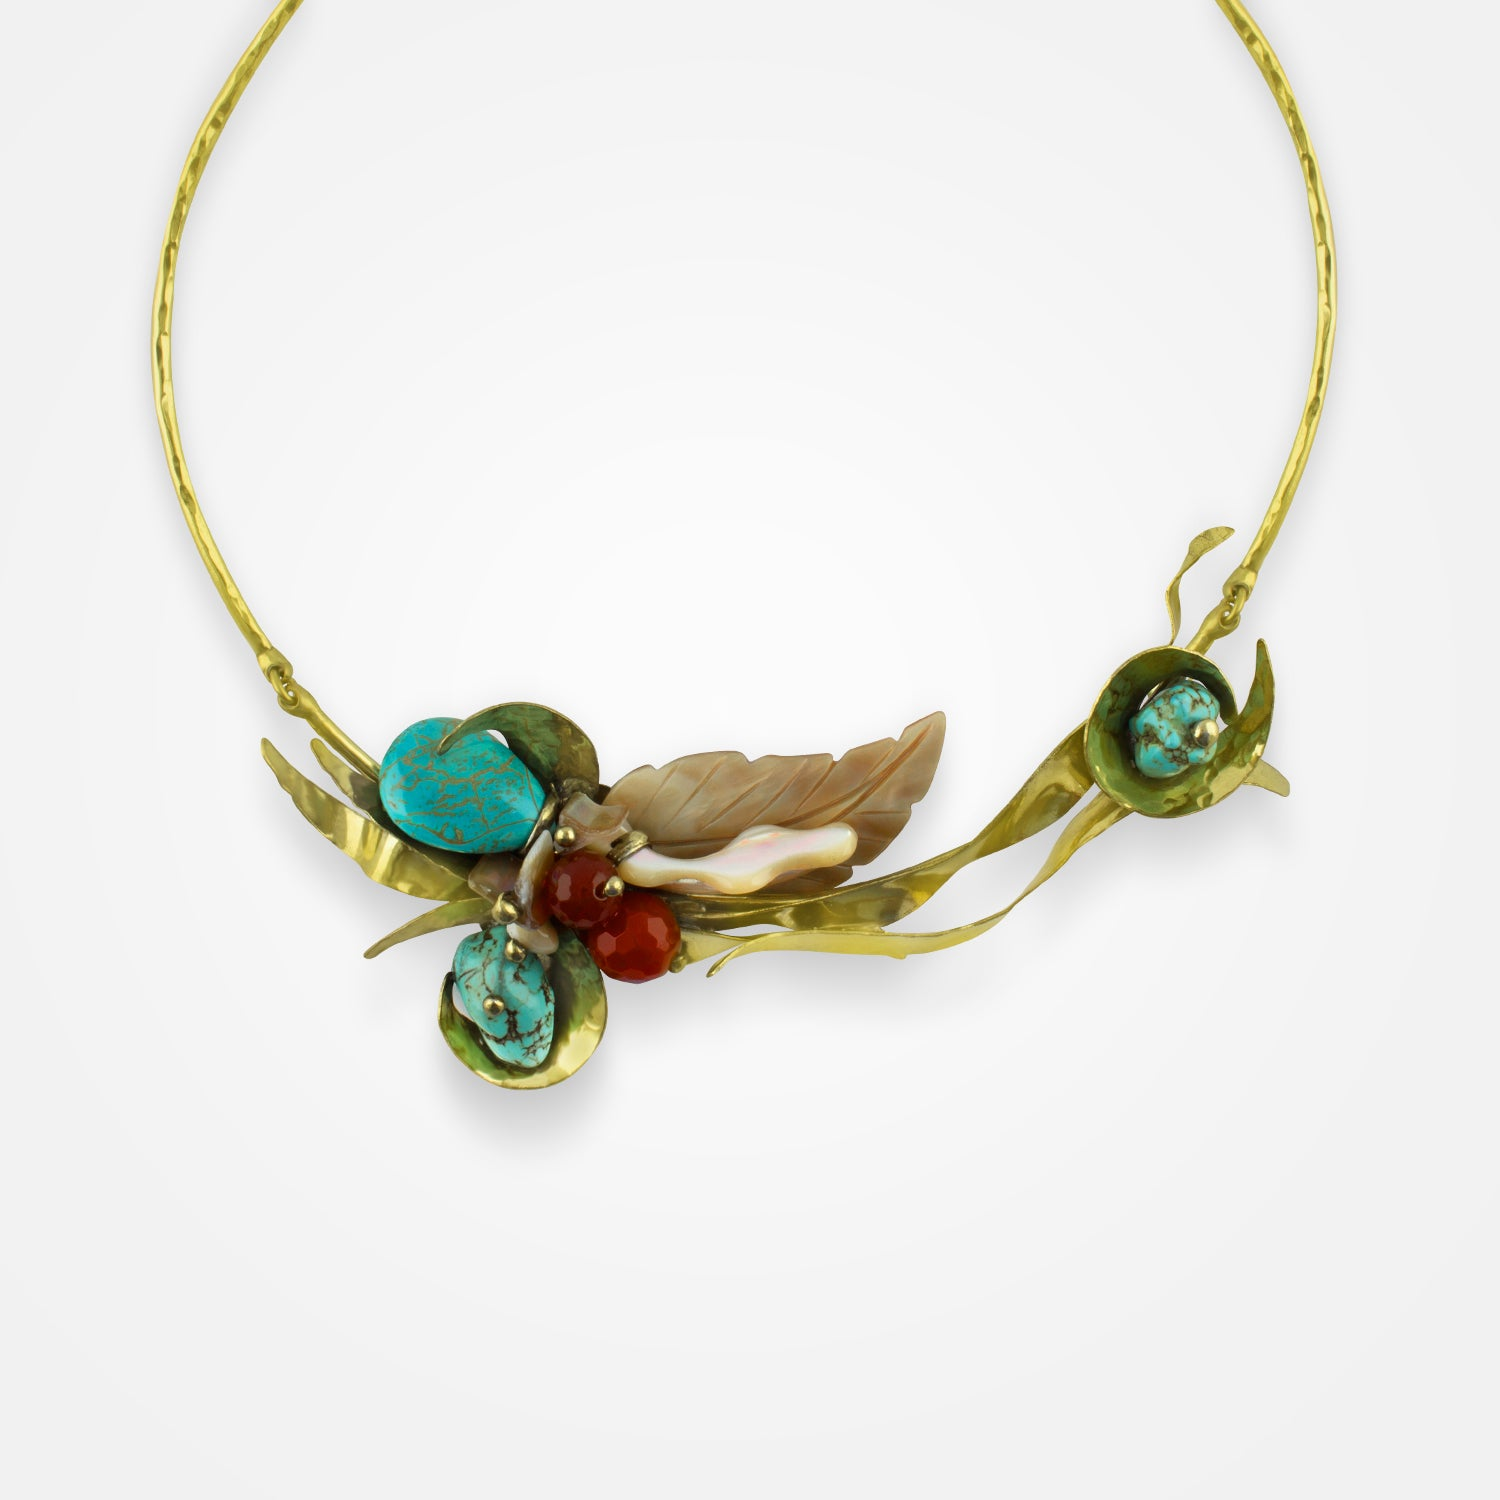 Handcrafted Turquoise Bloom Necklace by FO.BE